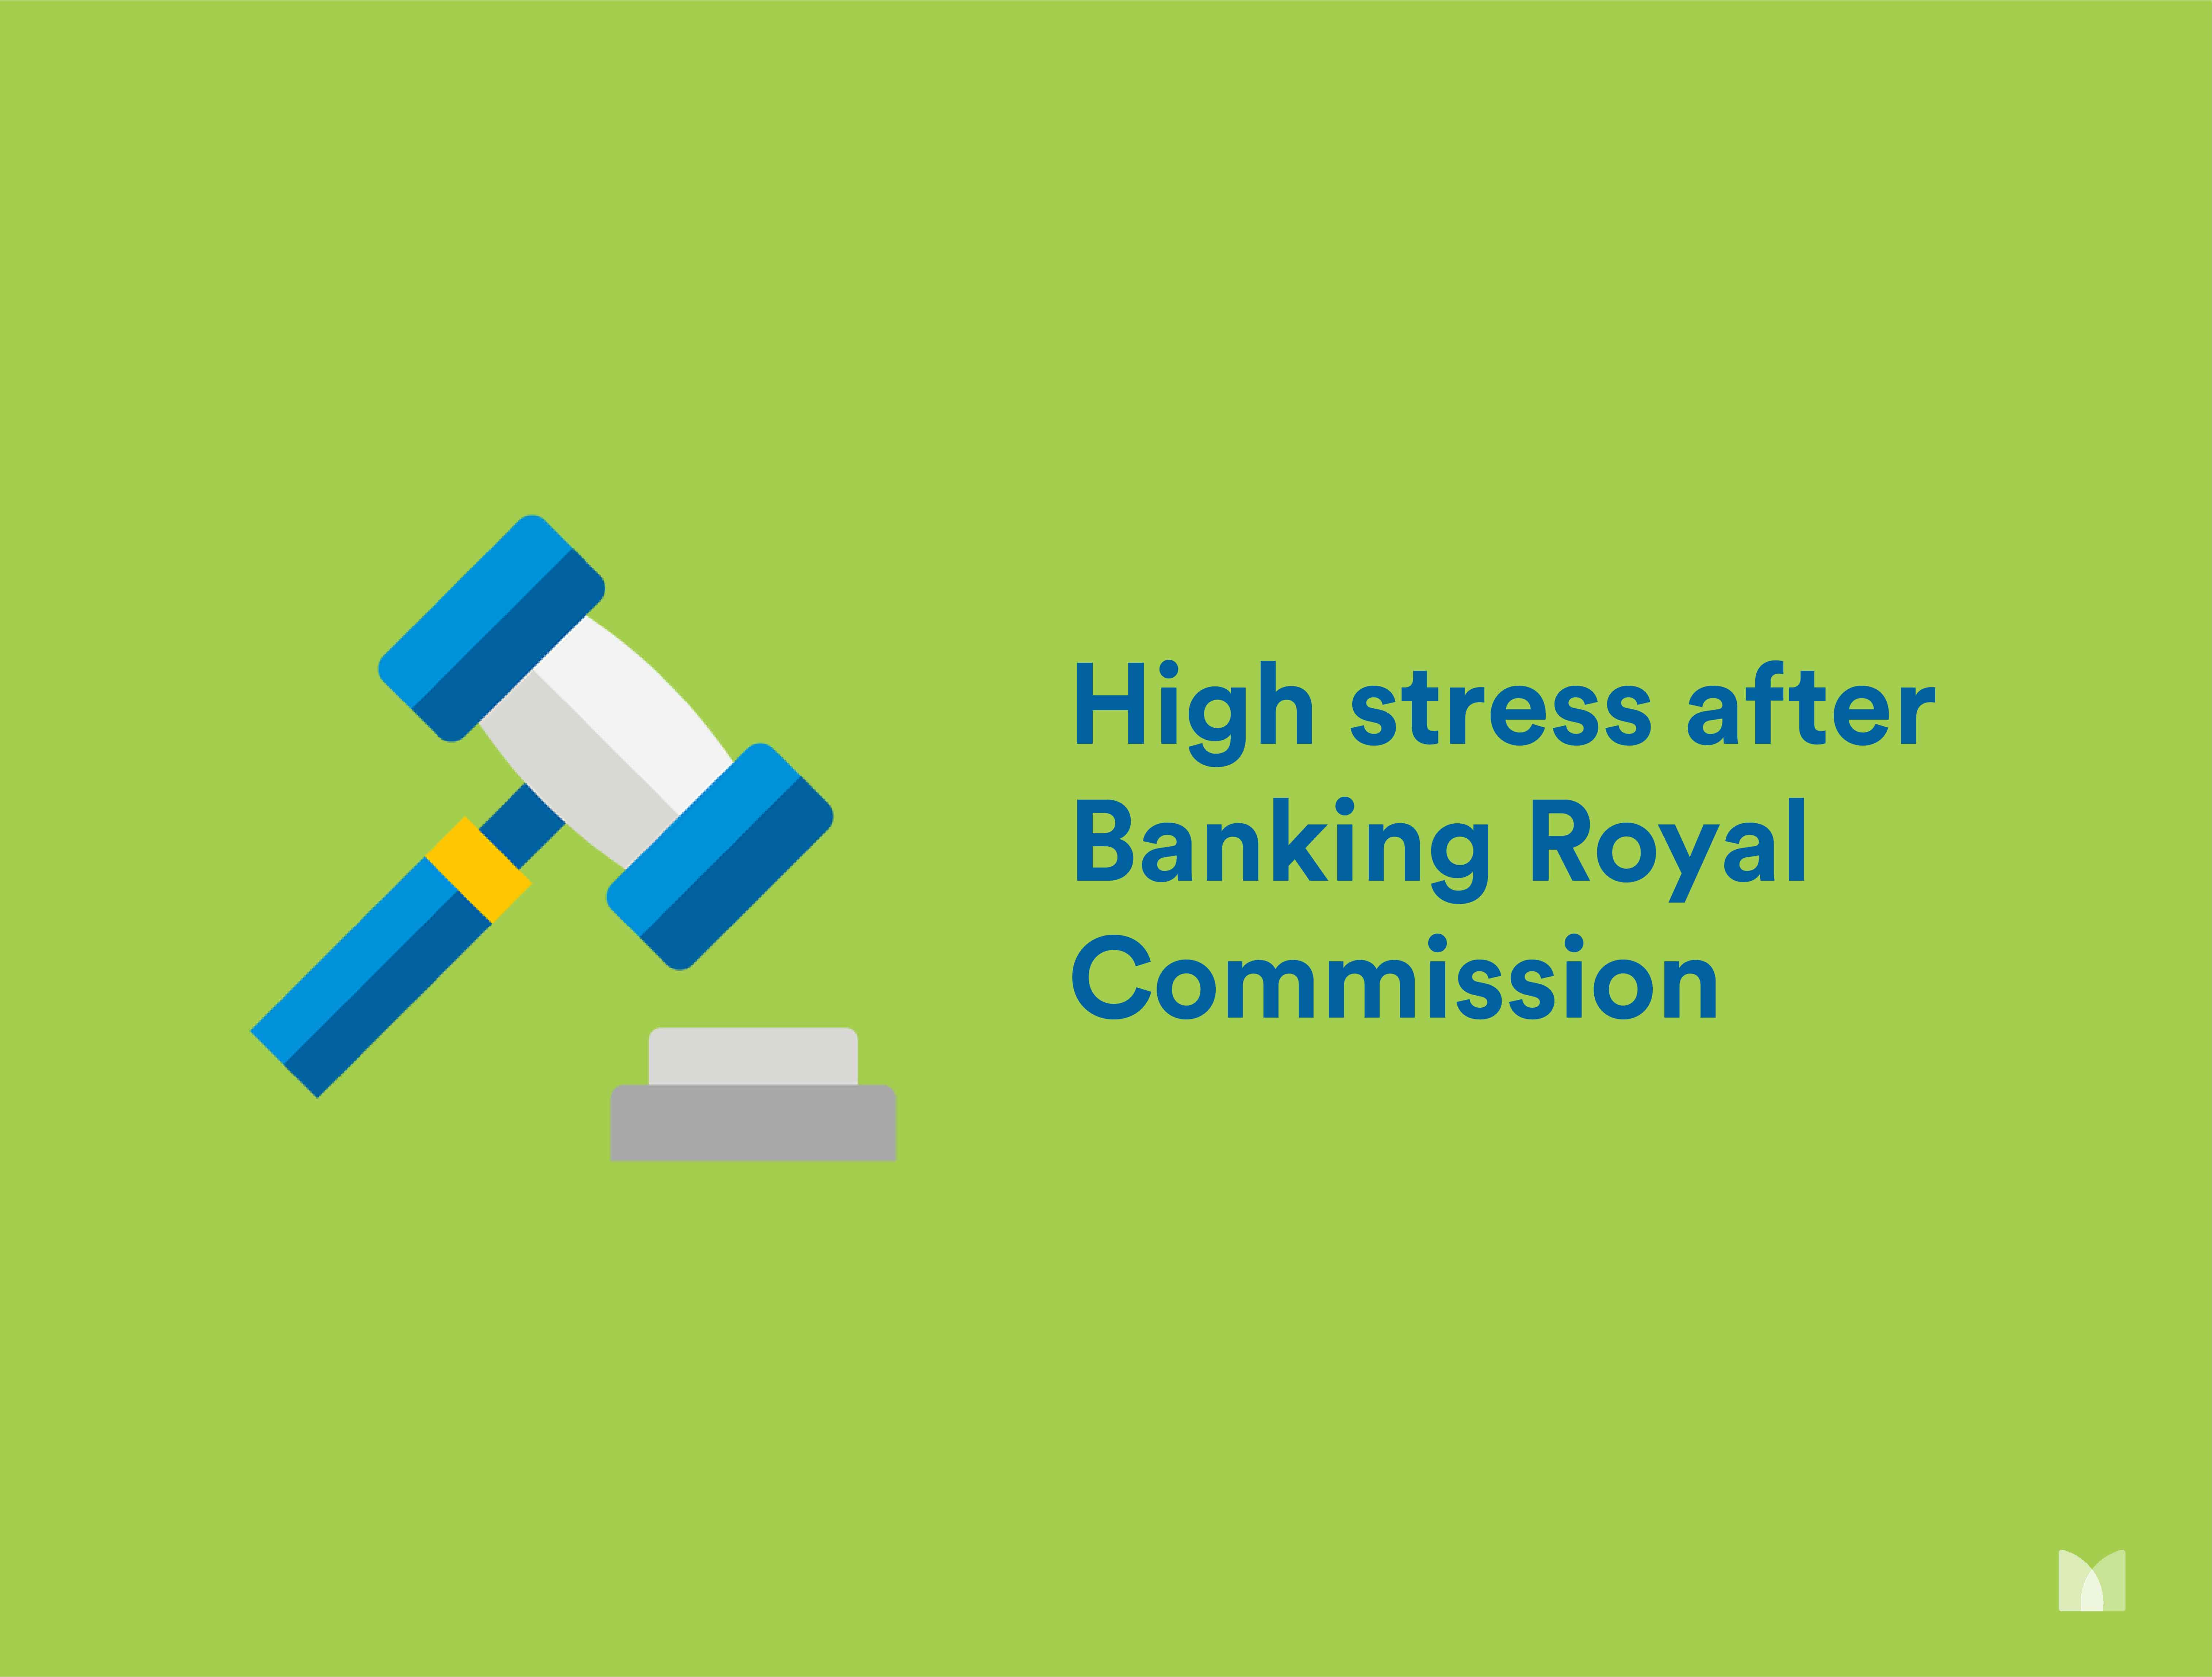 High stress after the Banking Royal Commission